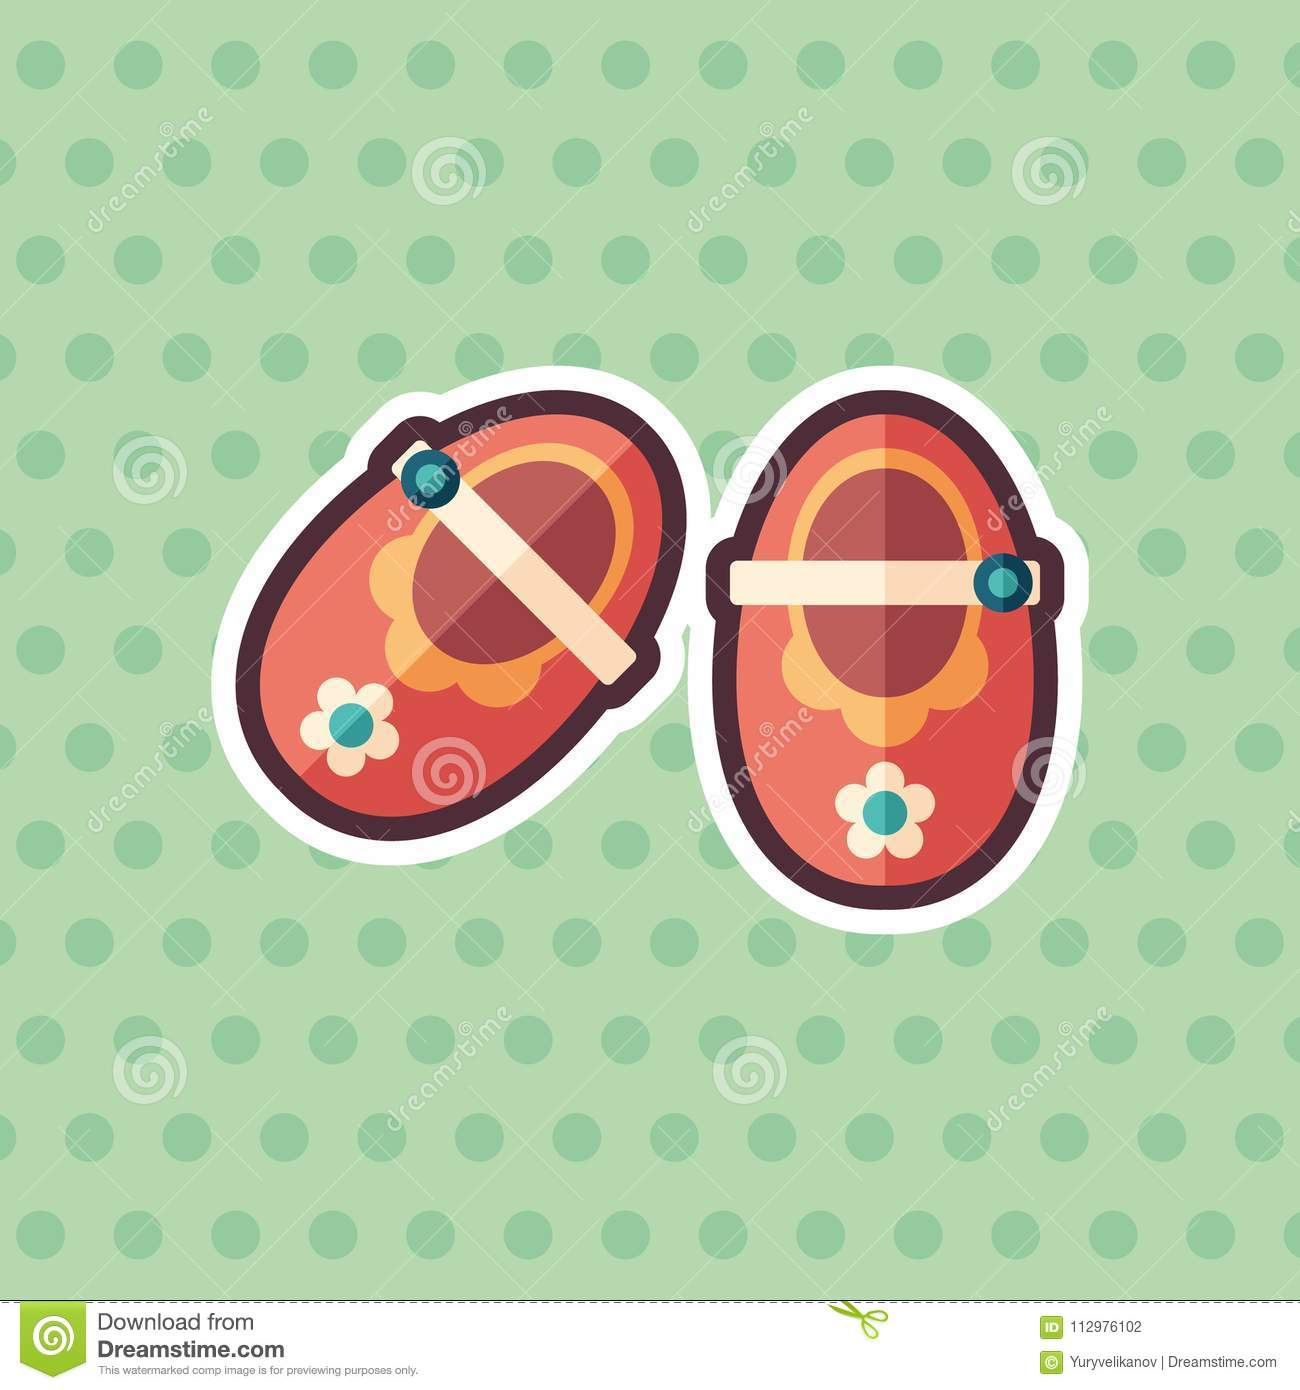 Baby booties sticker flat icon with color background.